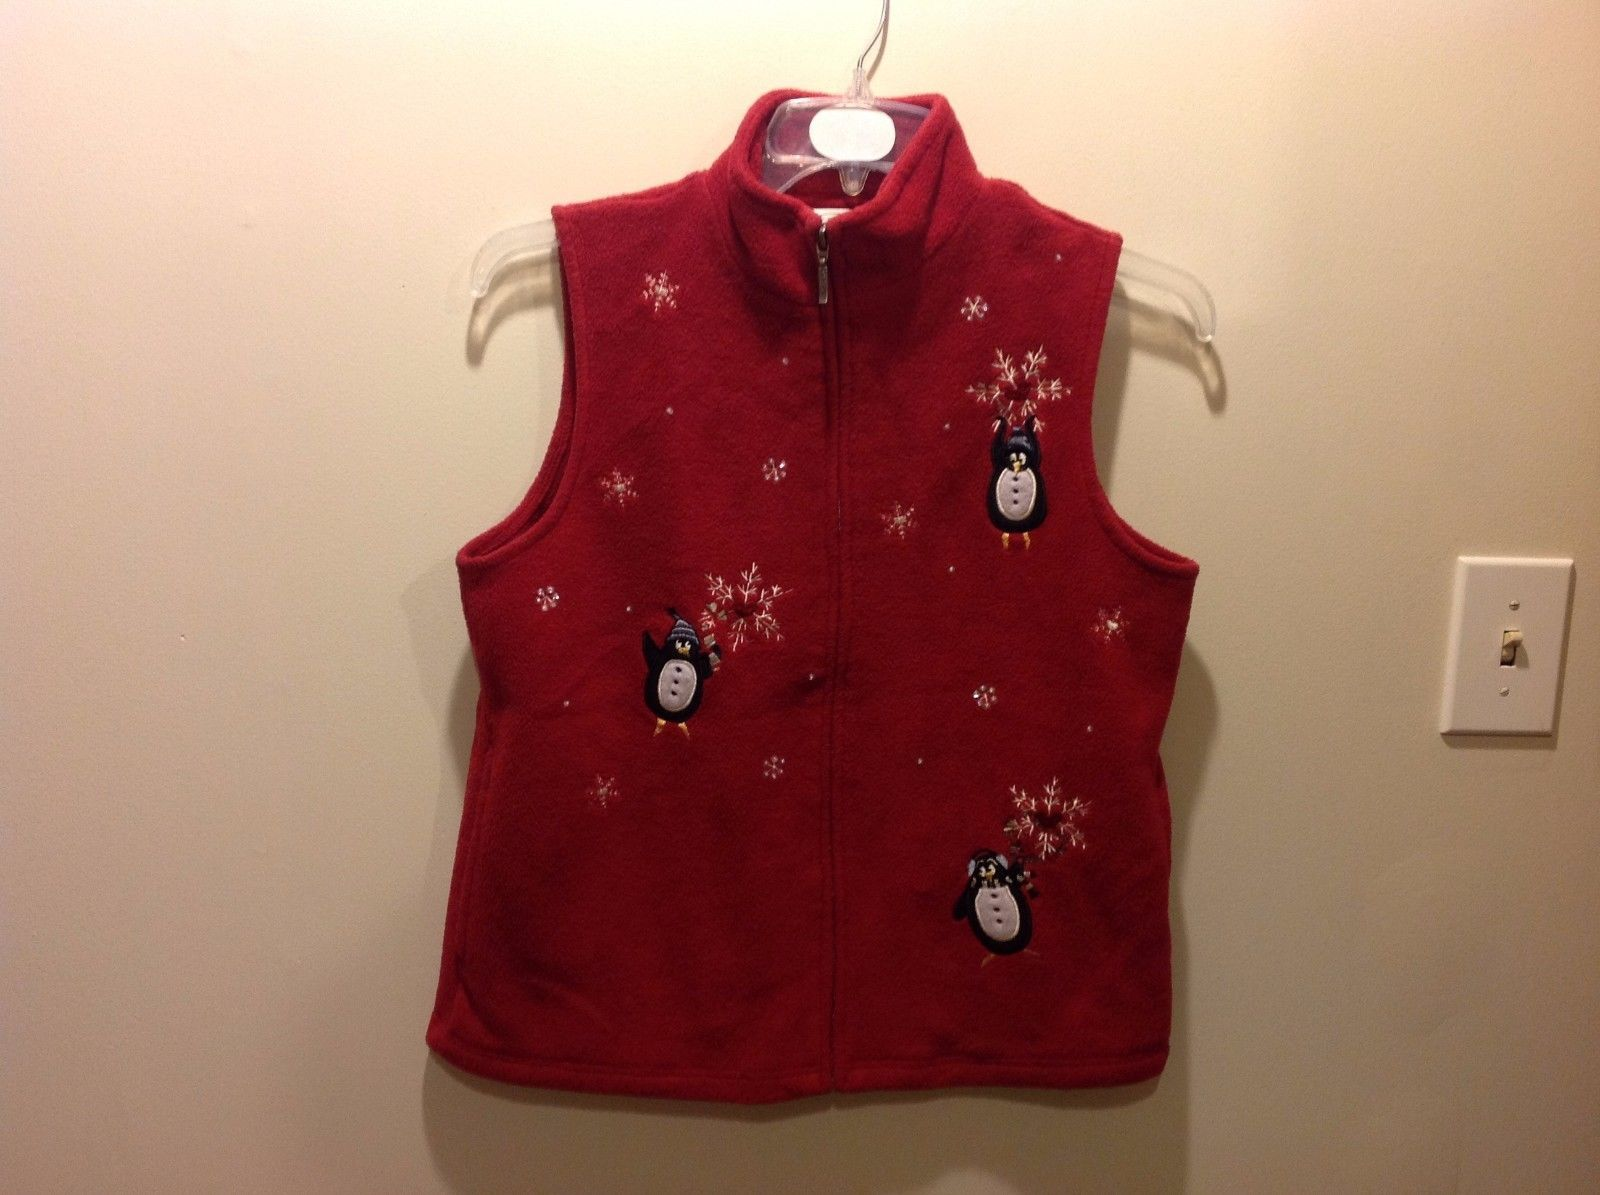 Northern Selections Festive Holiday Themed Red Zip Up Collared Vest Sz S